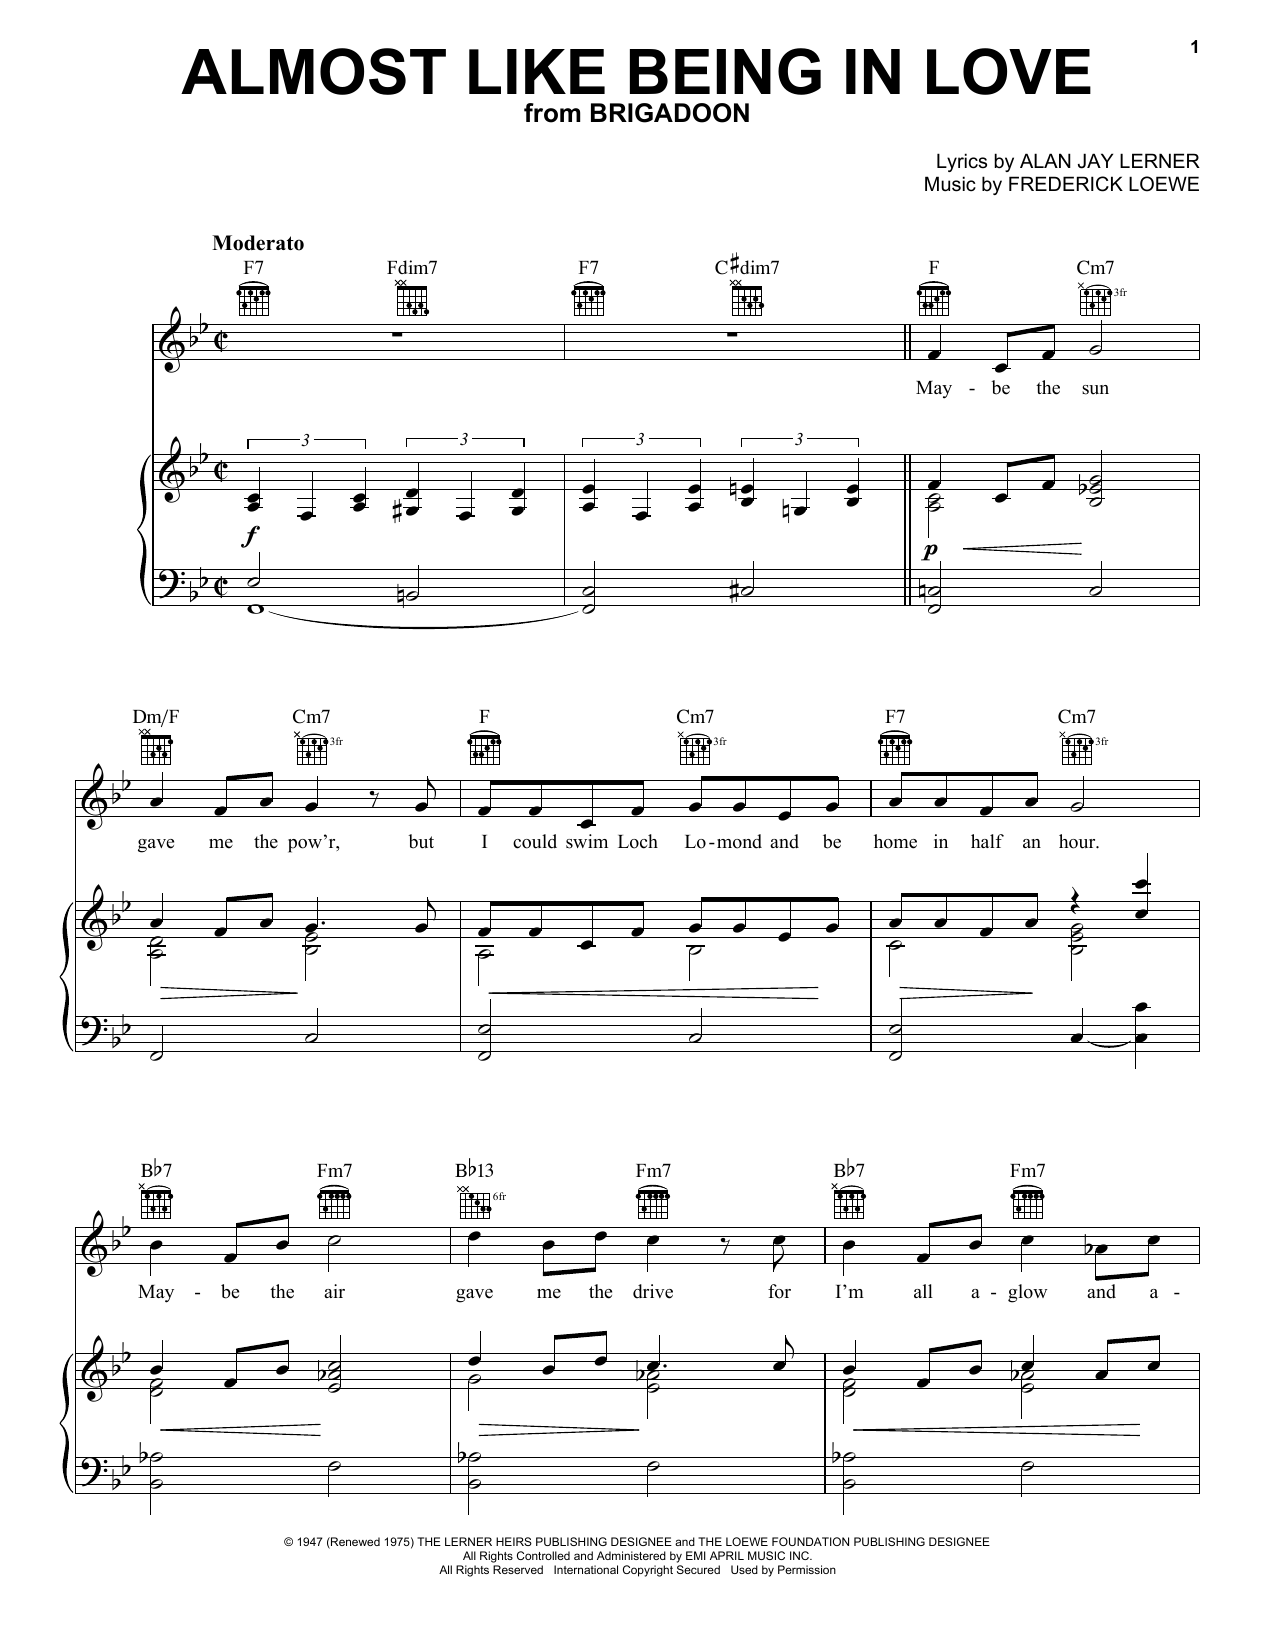 Almost Like Being In Love sheet music for voice, piano or guitar by Frederick Loewe